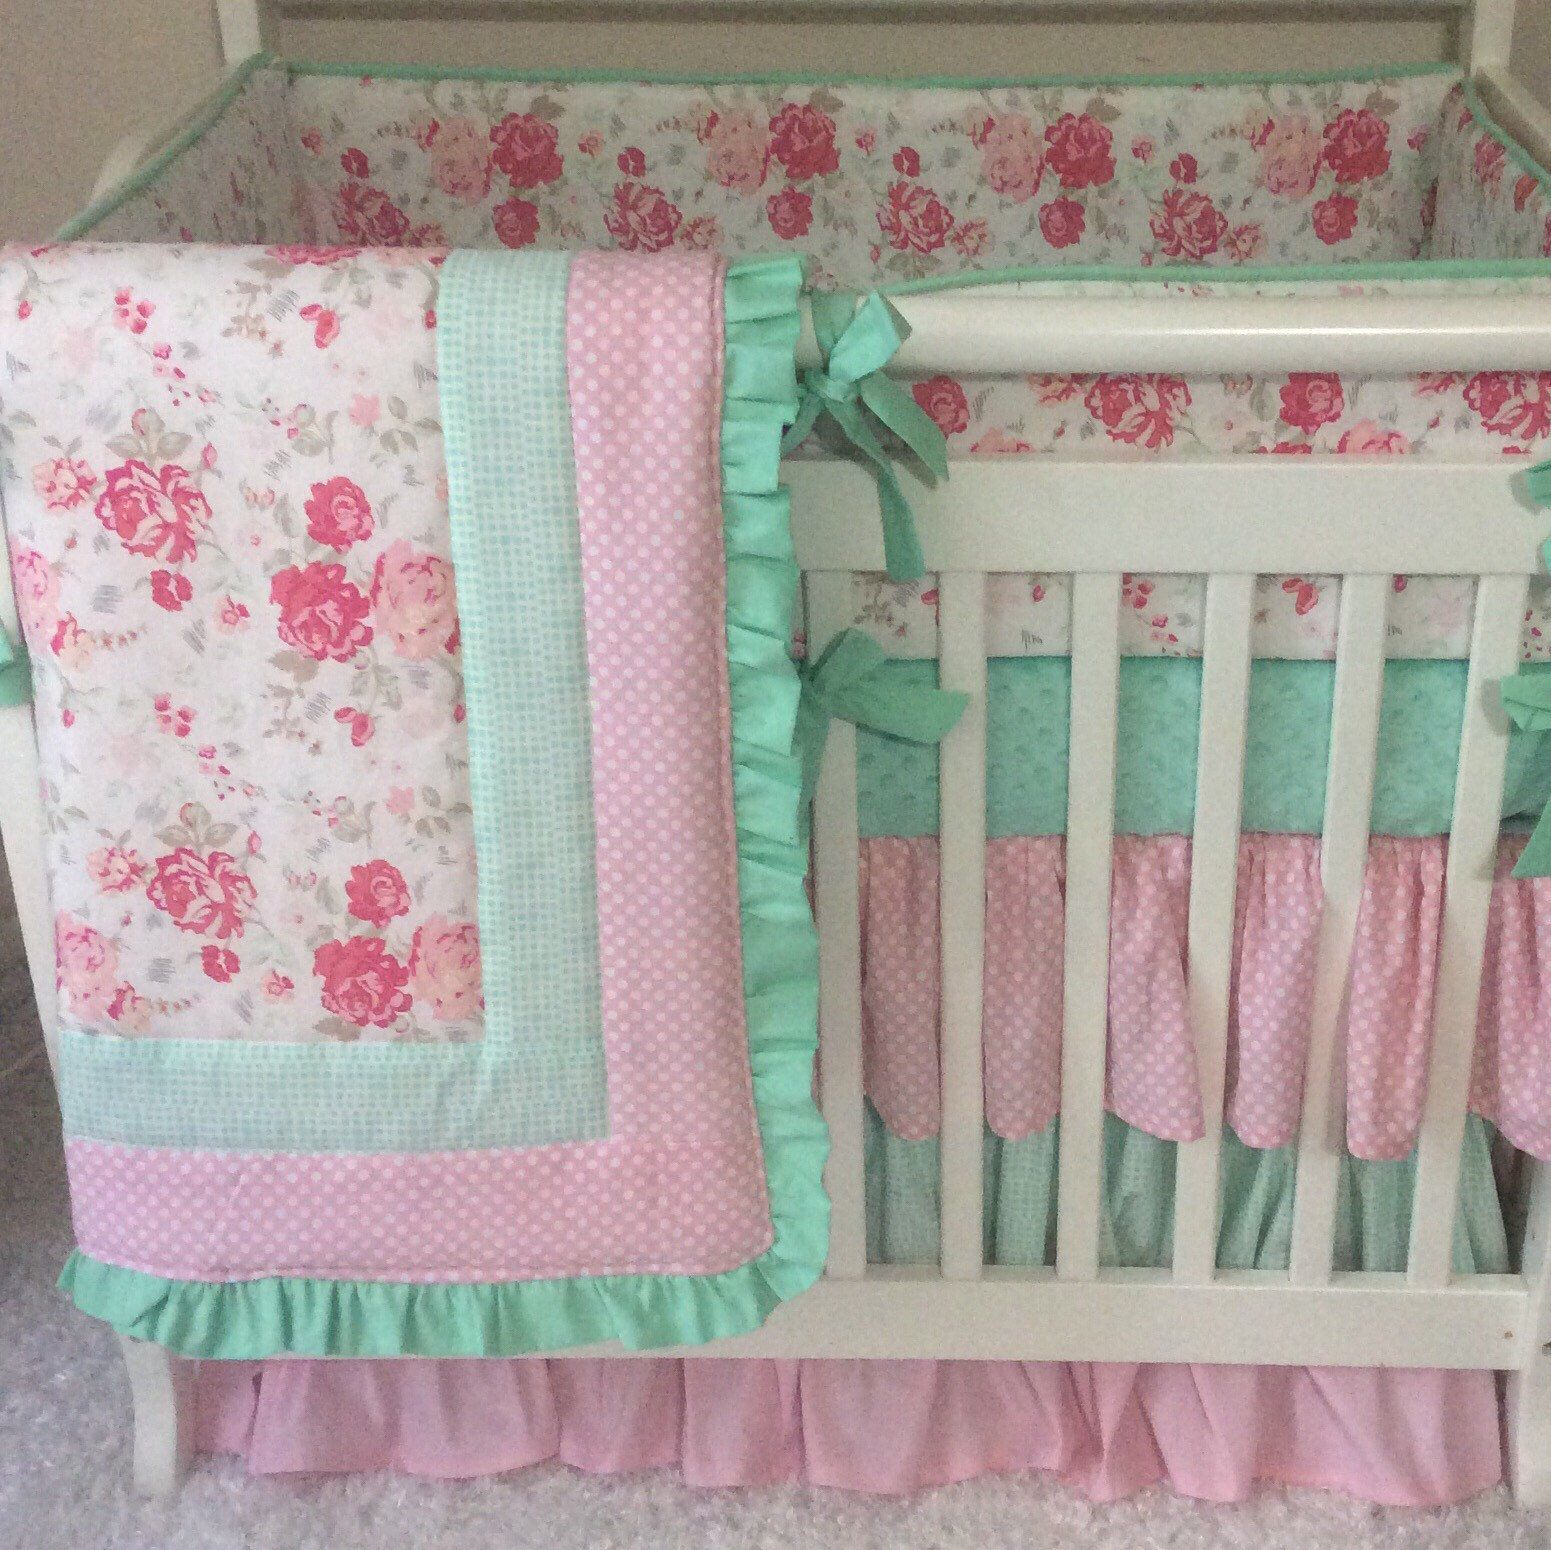 Mini Crib Bedding Pink And Mint Floral Ruffled Baby Girl